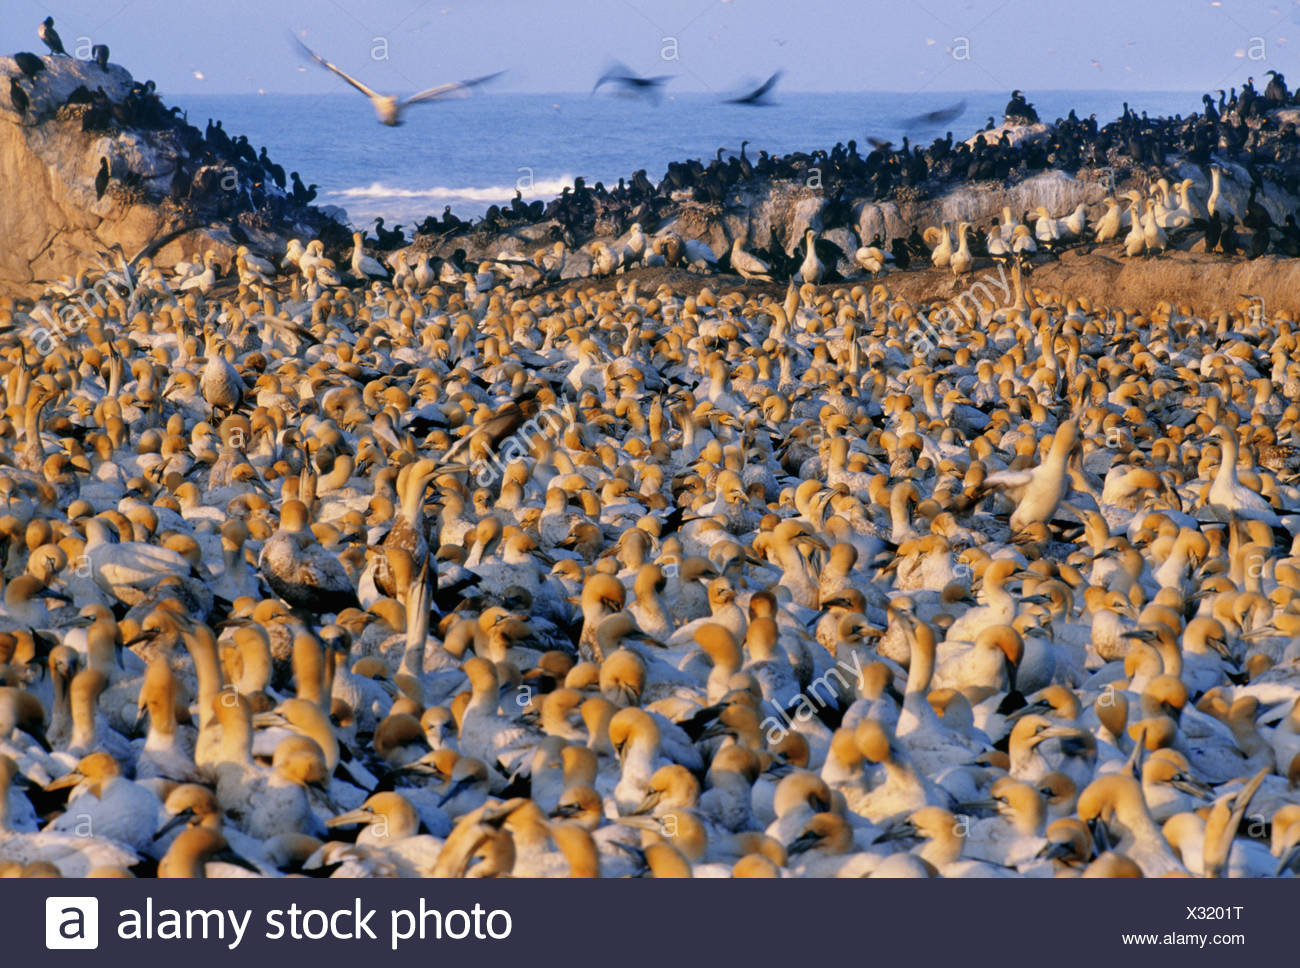 Lambert's Bay South Africa Cape gannet colony Morus capensis South Africa - Stock Image